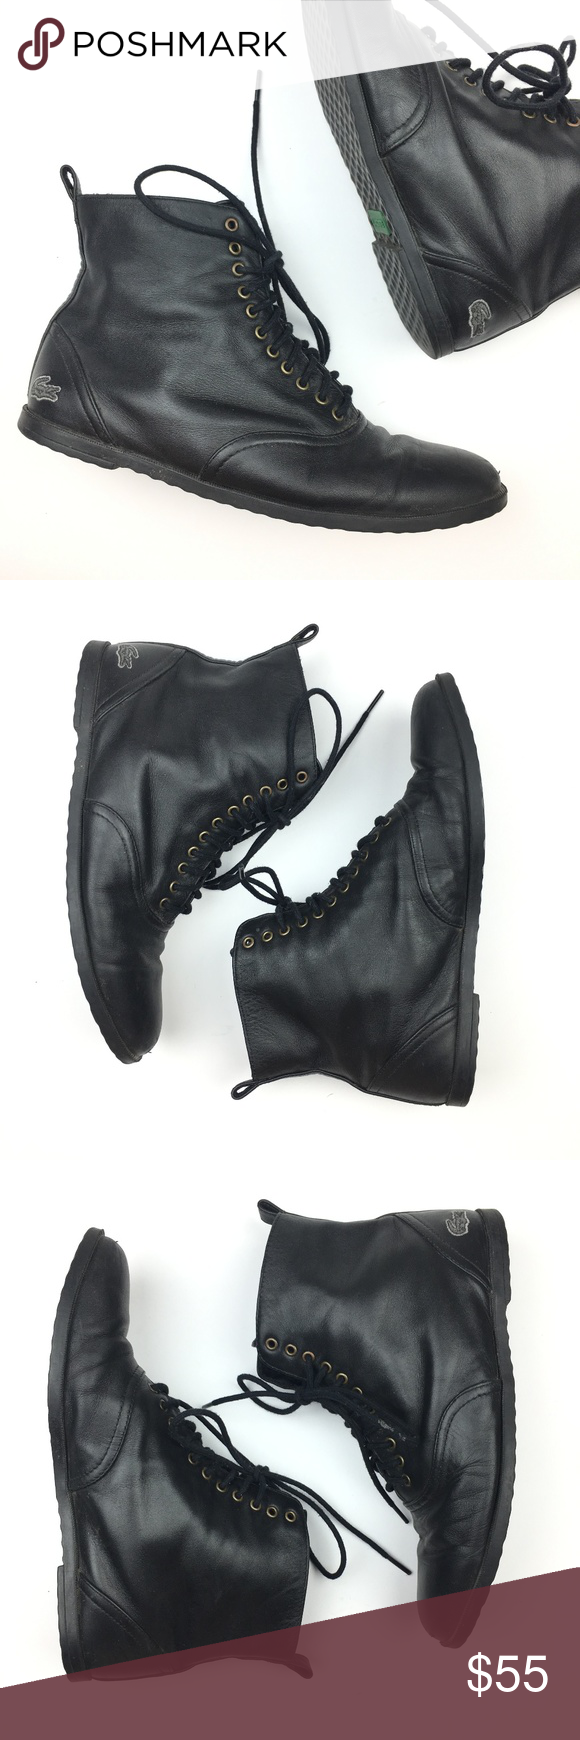 Yuxone Lacoste Up Lacoste Black 3 And Lace Boots Rare CxxdwpSq